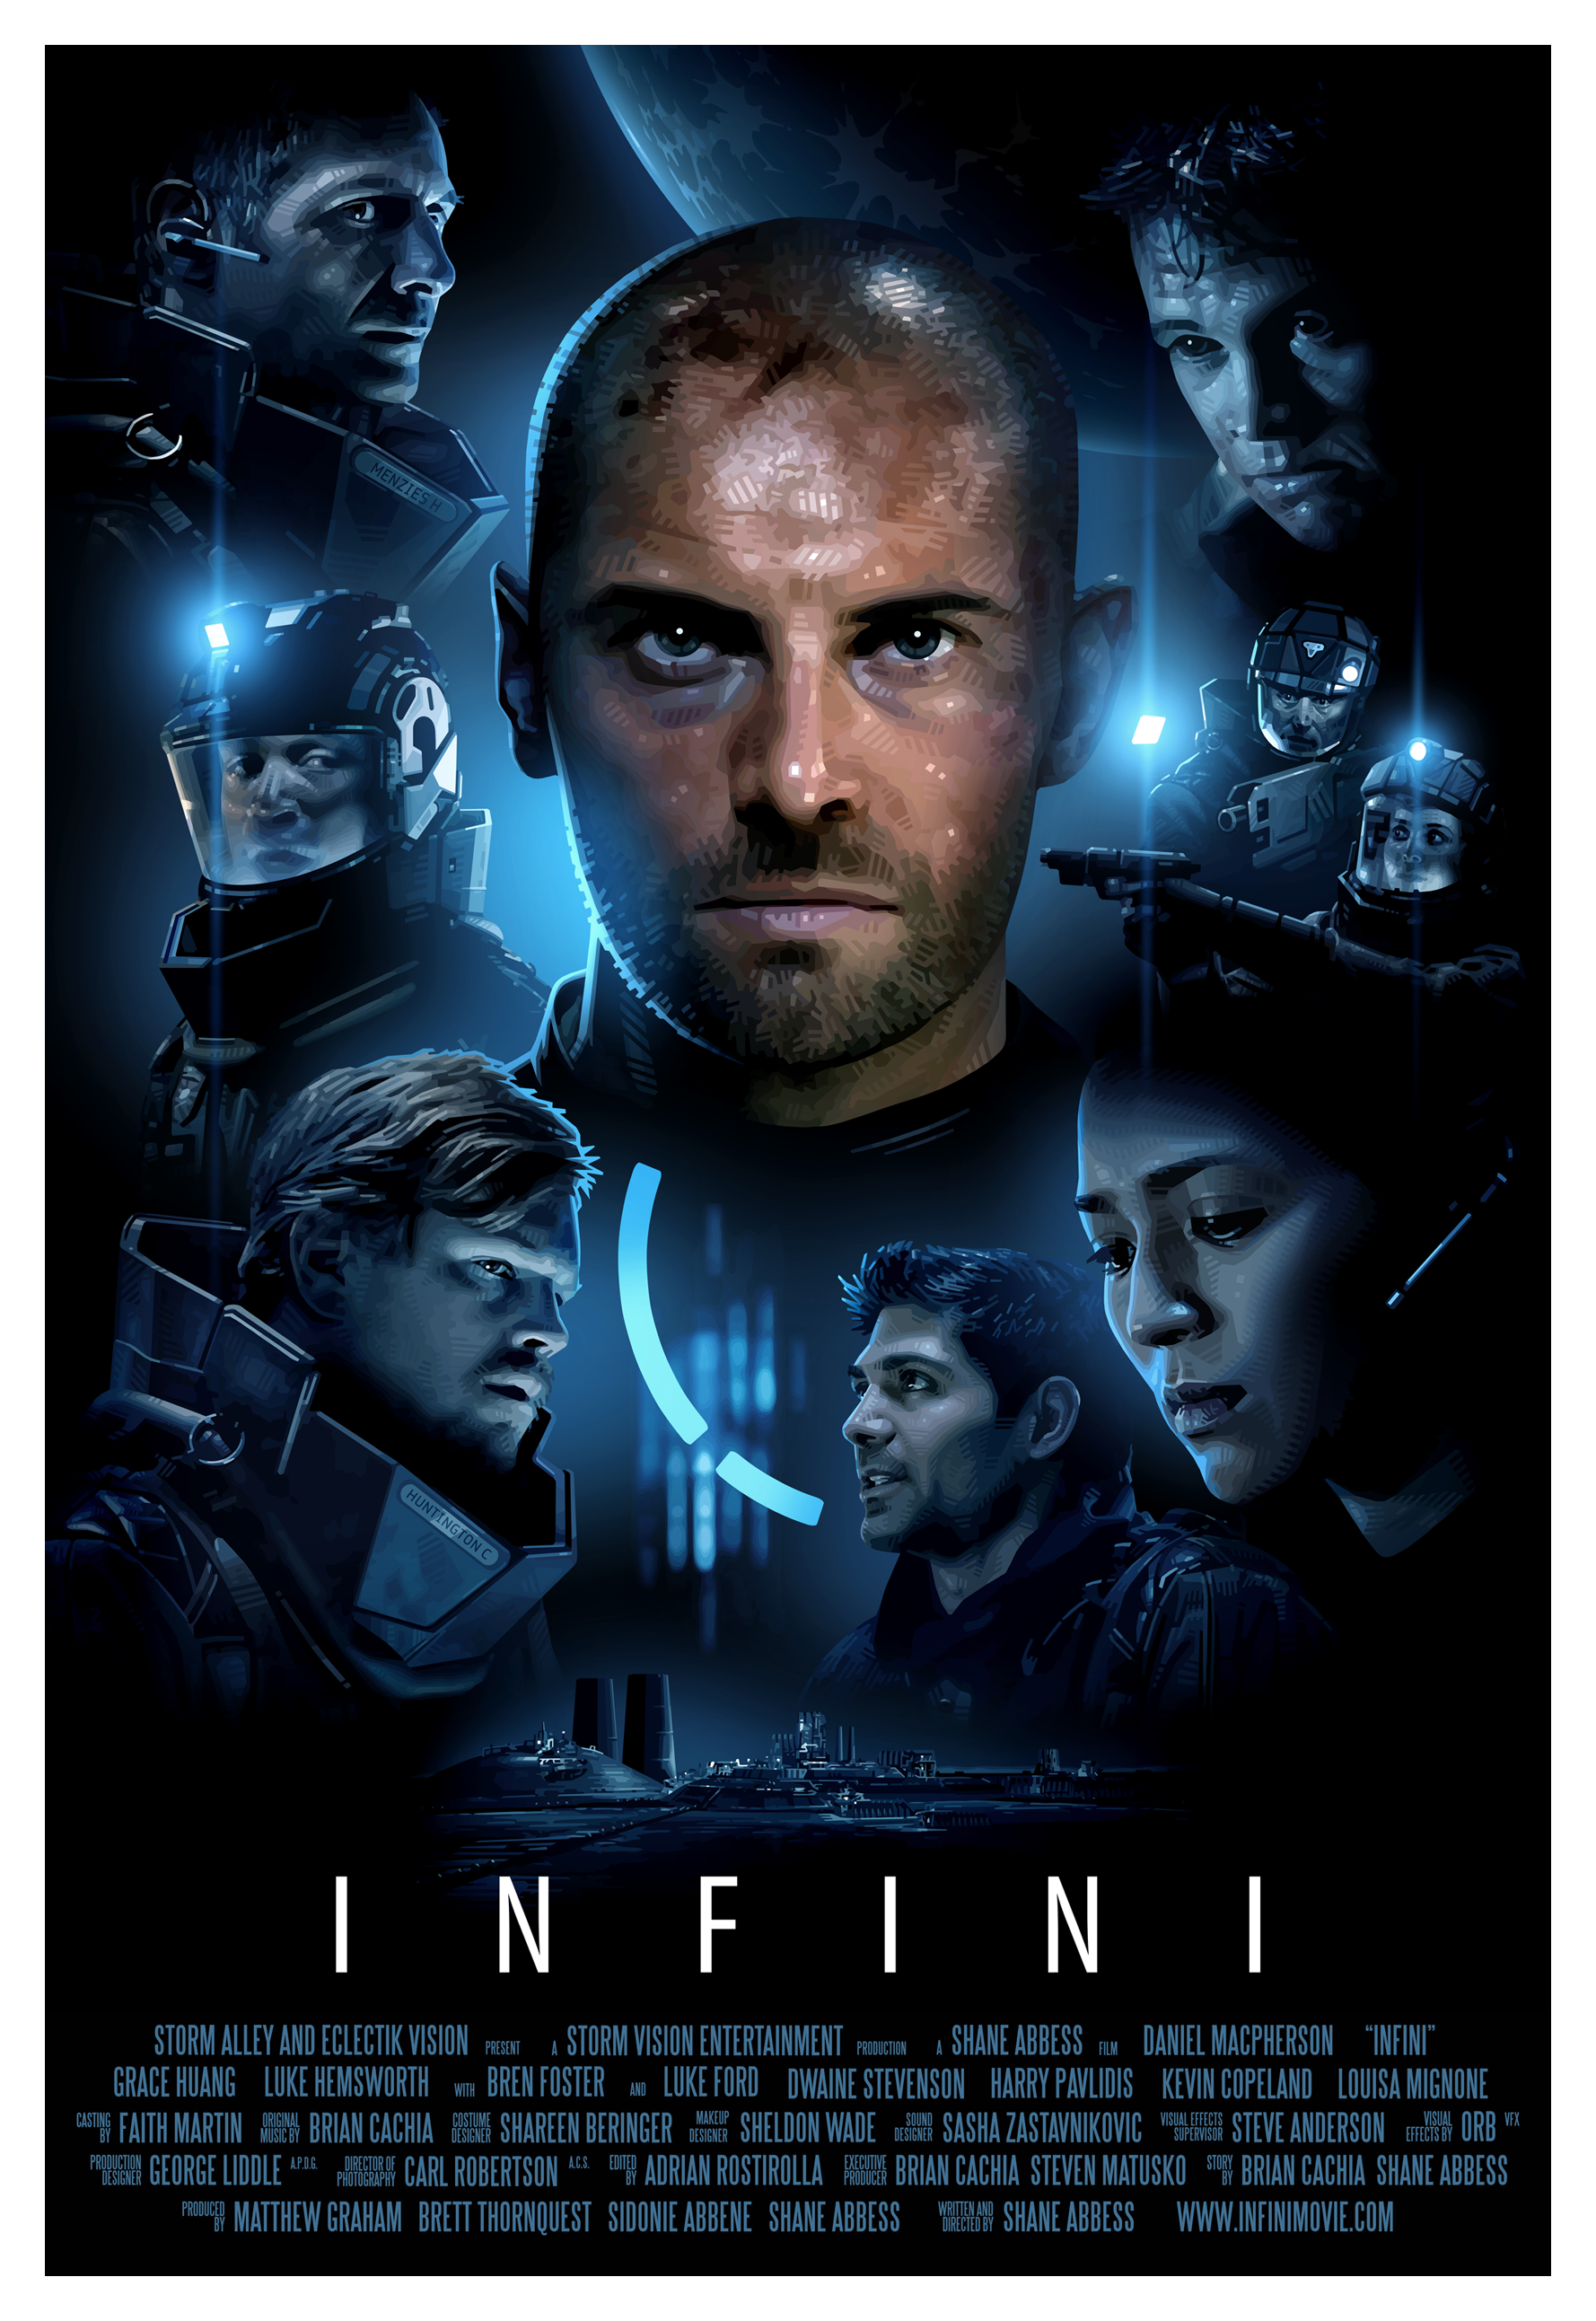 Infini film review: Alien meets The Shining